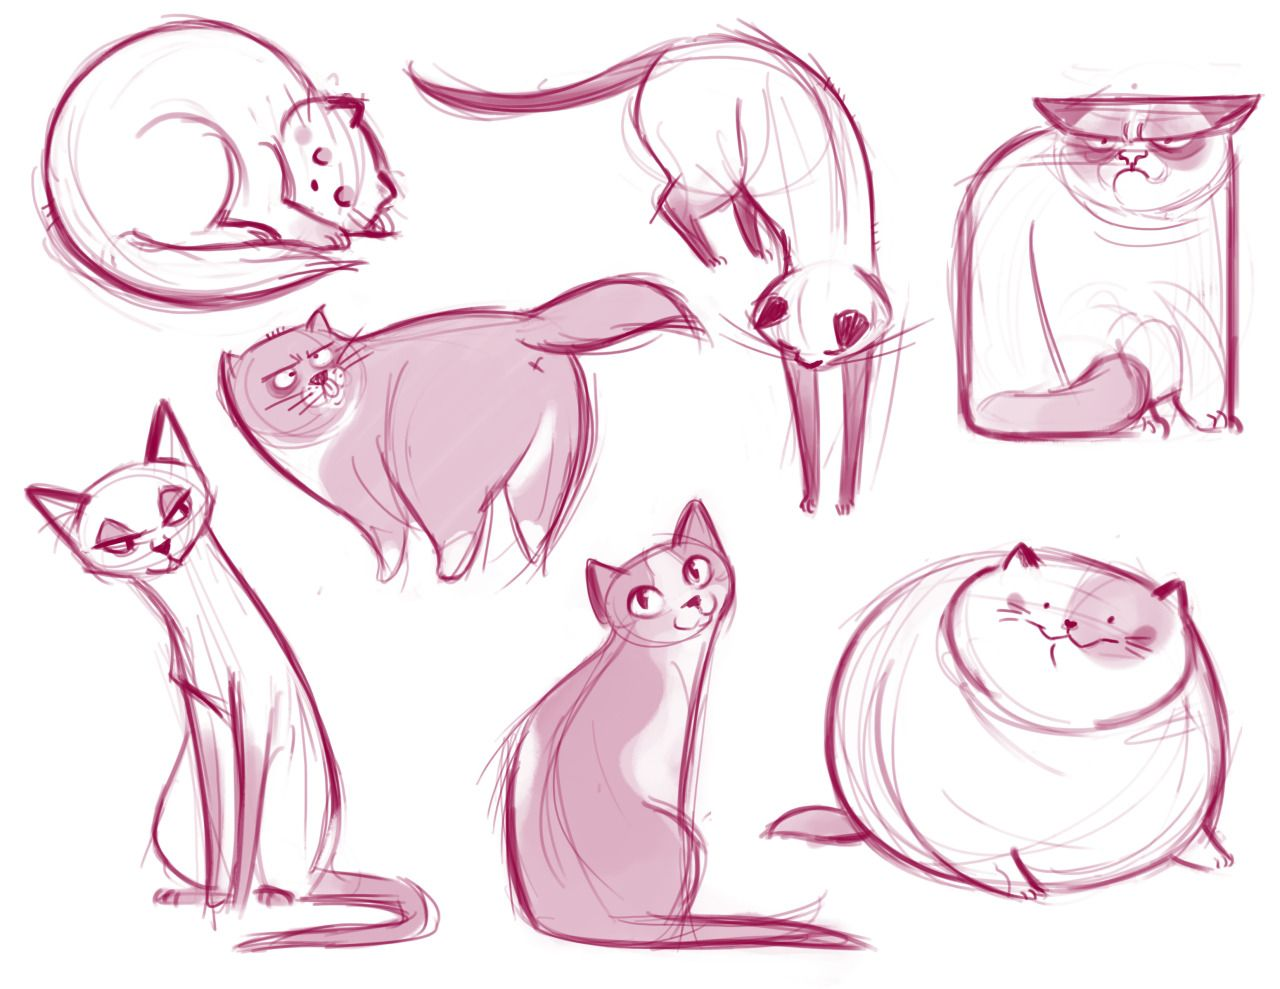 021: Cat Doodle Dump A Bunch Of Kitty Scribbles! Yeah Grumpy Cat Made